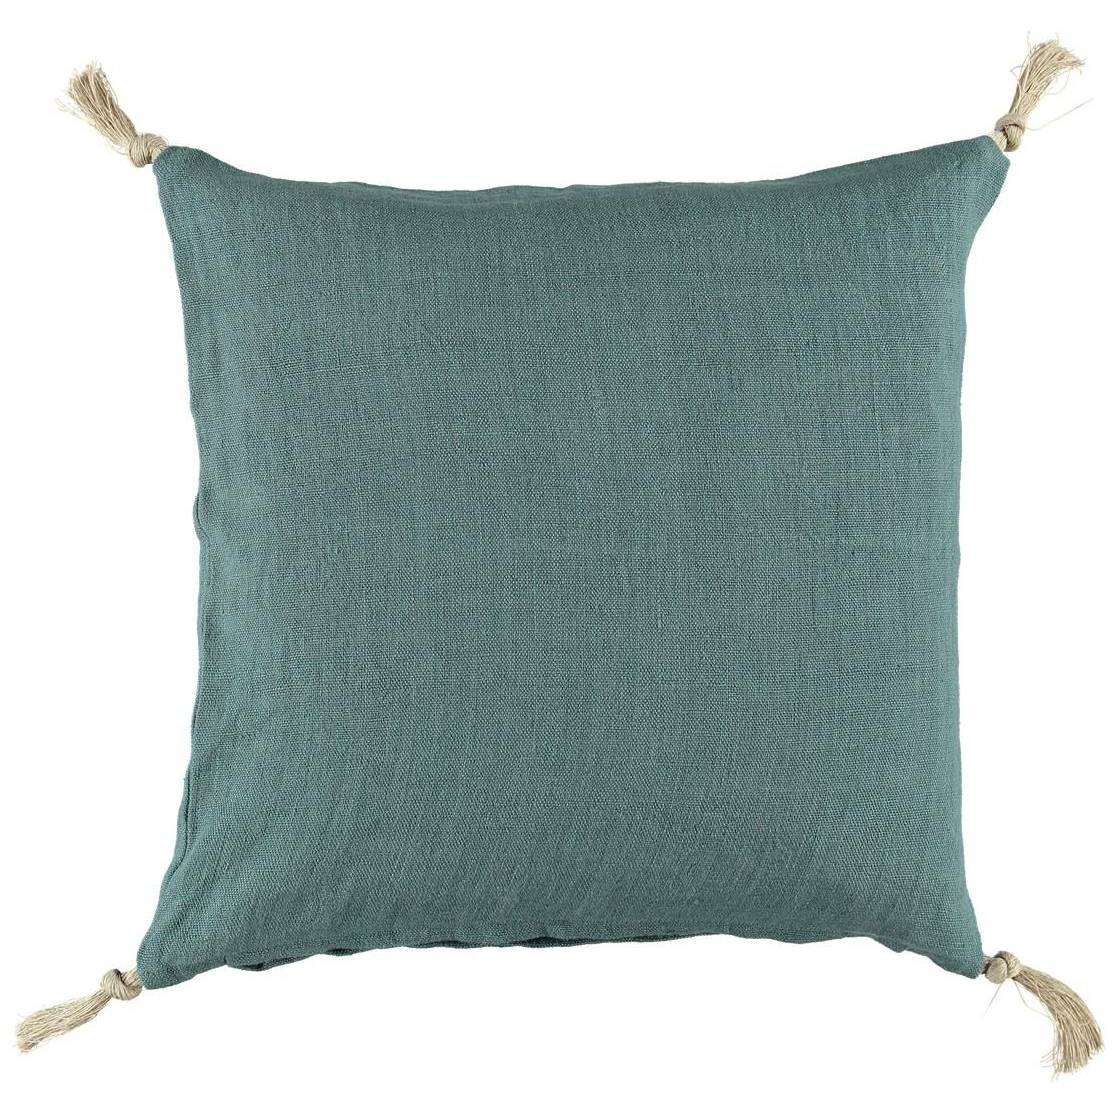 Gripsholm Linen Cushion Cover 50x50 cm, Misty Grey